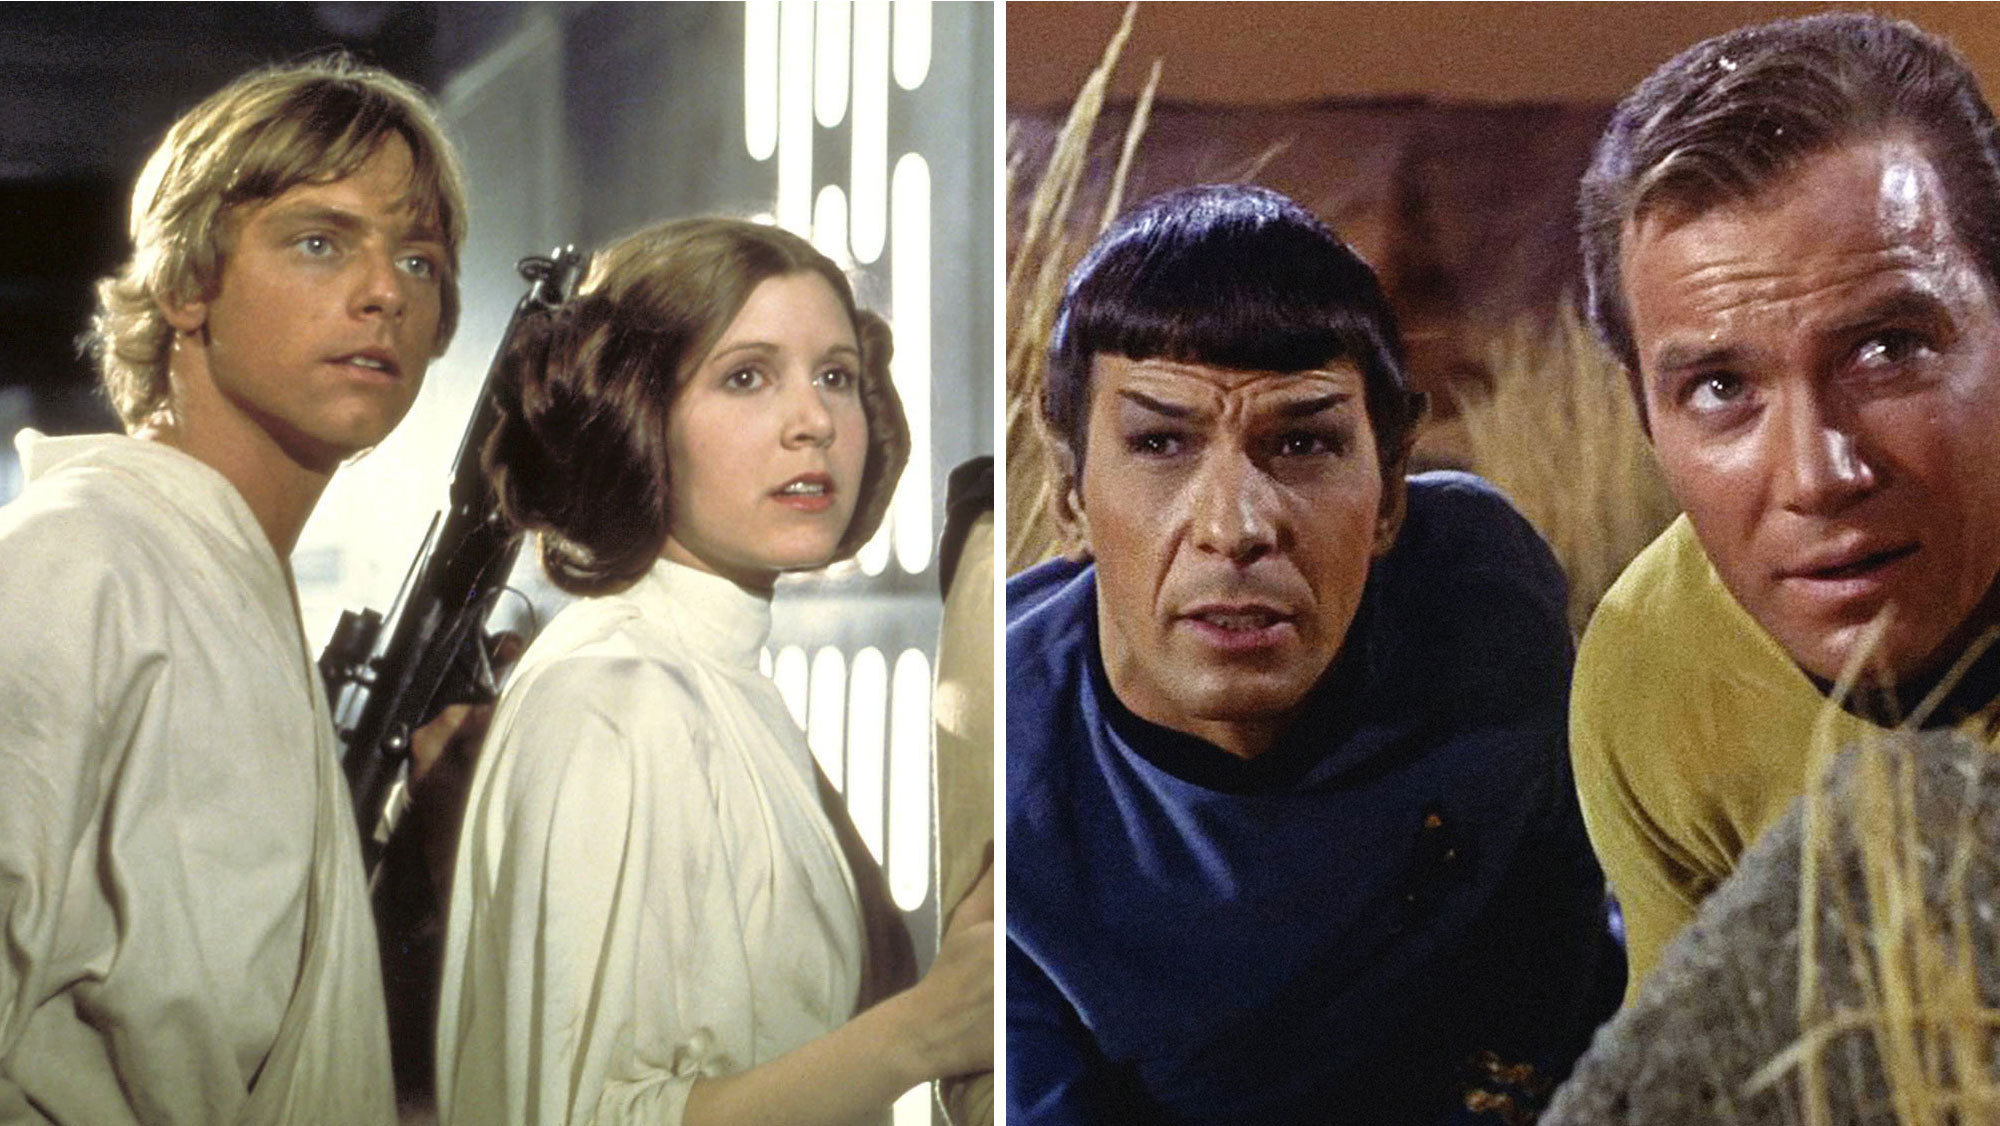 Opinionated Essay help. (Involves Star Trek and Star Wars)?